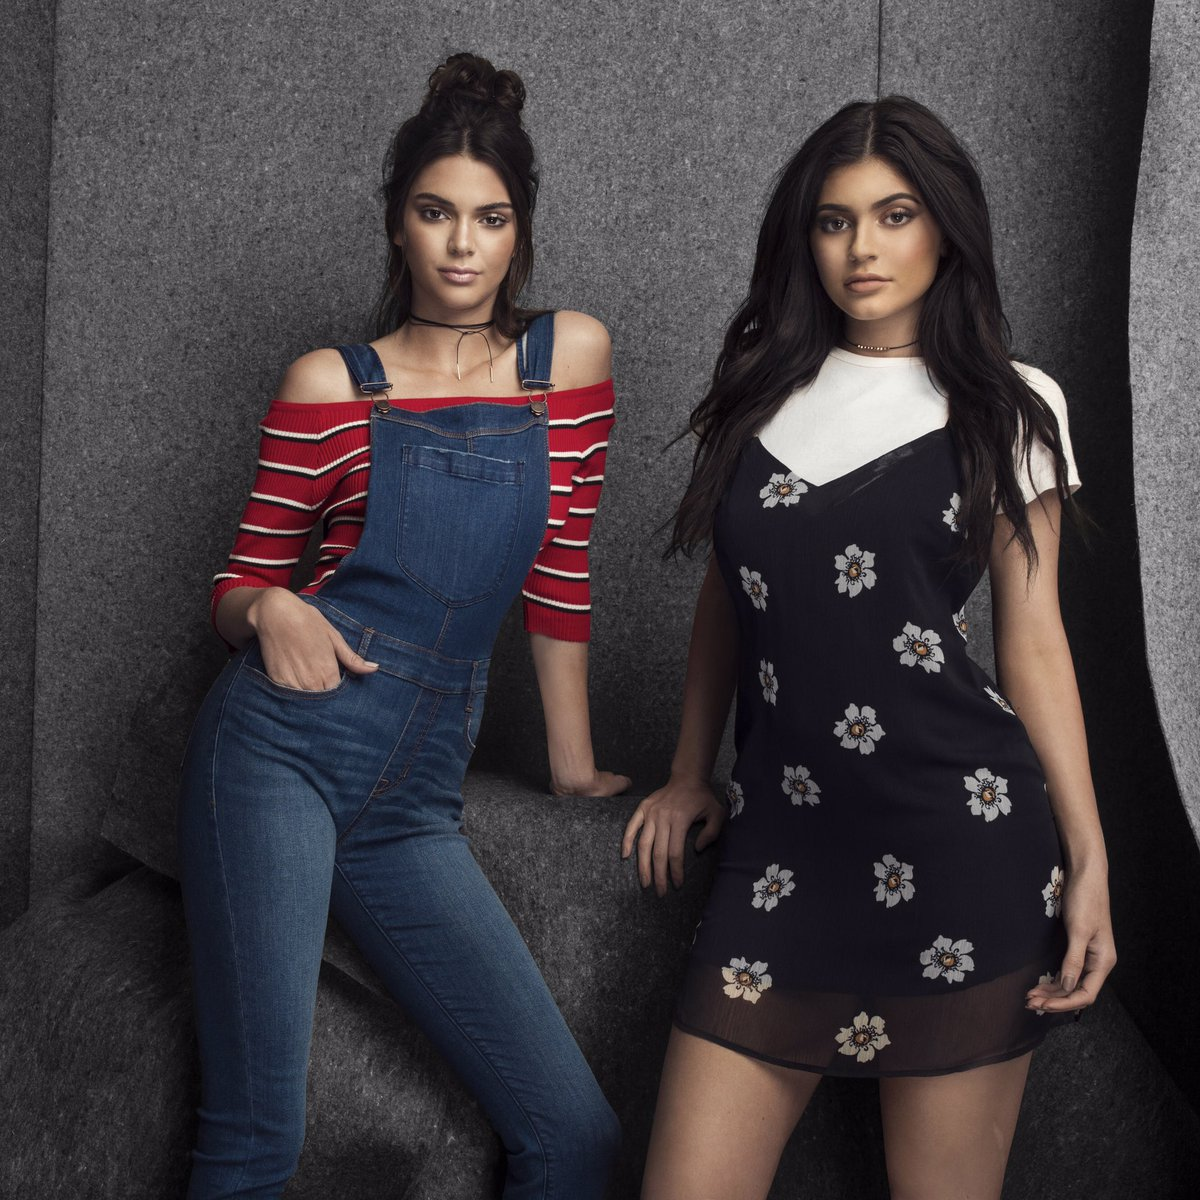 51734affb50 Kendall ·  KendallJenner 2 years. our kandk4pacsun collection just launched  at pacsun go shop